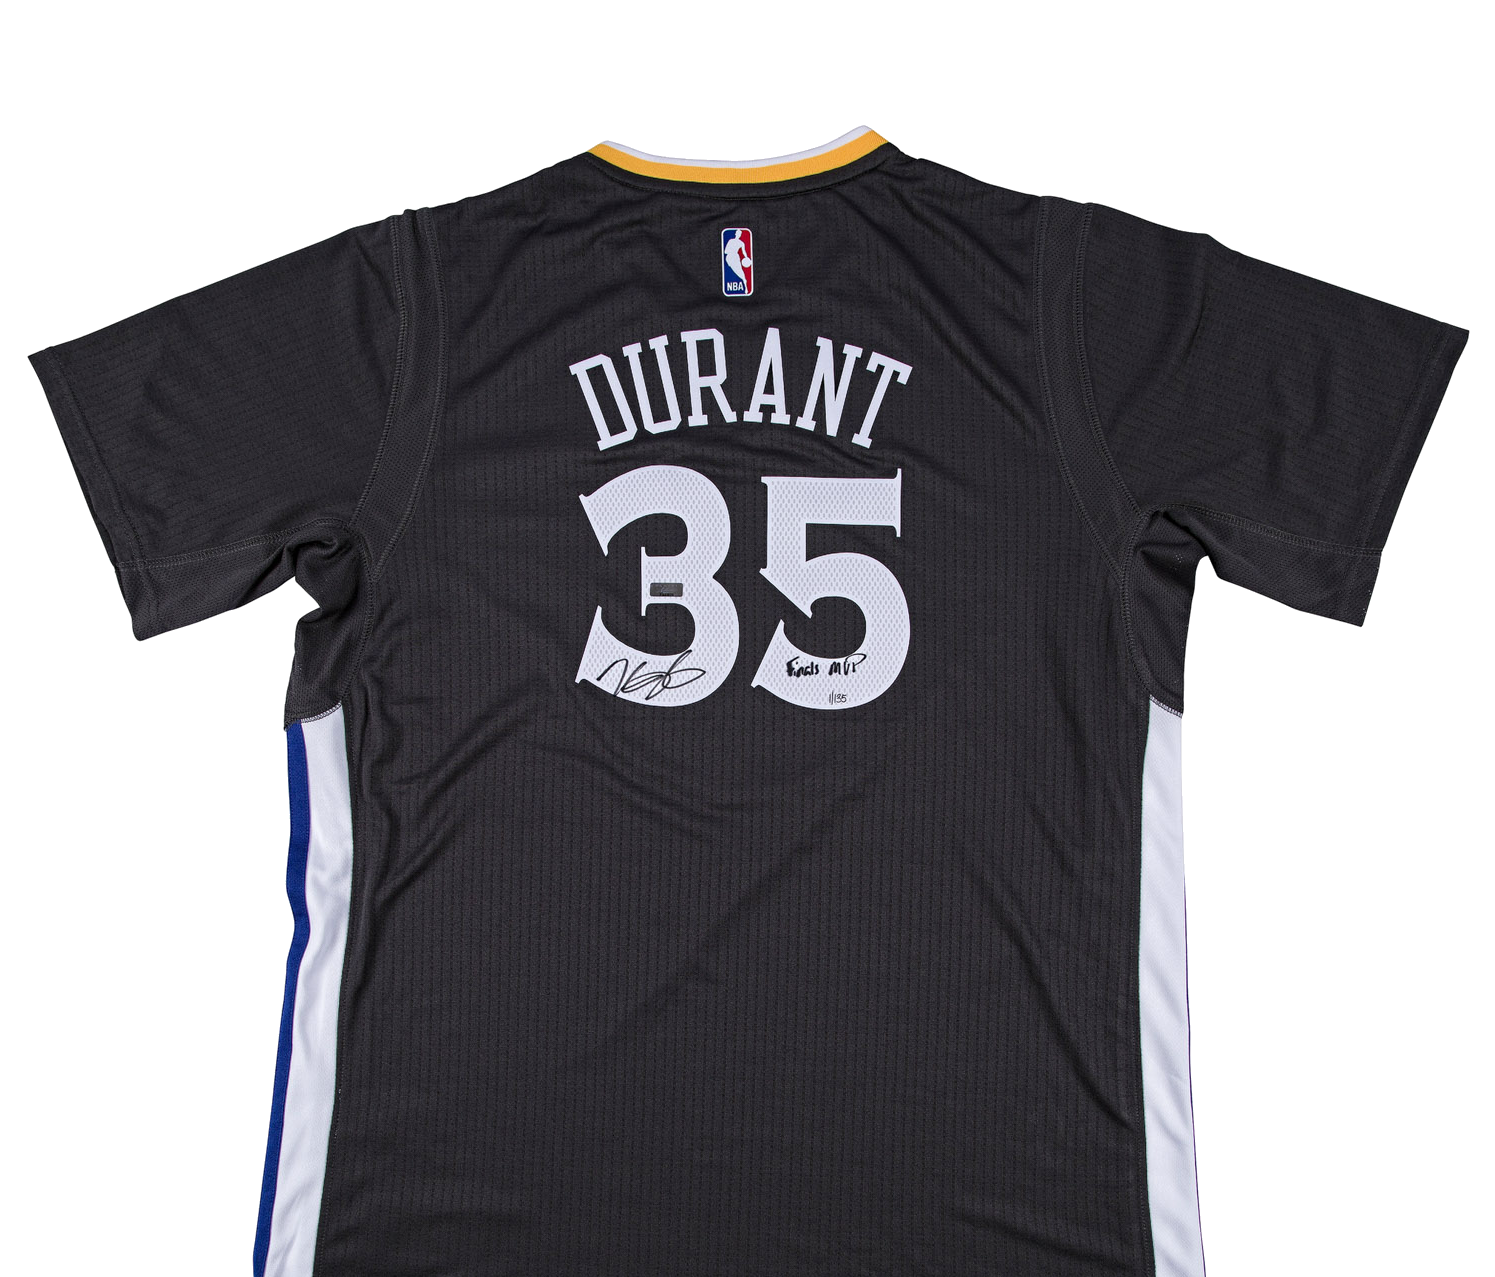 Share. Ídolos   Productos   Deportes   NBA   Golden State Warriors   Kevin  Durant playera firmada Golden State Warriors edición ... 9c0732cf28d